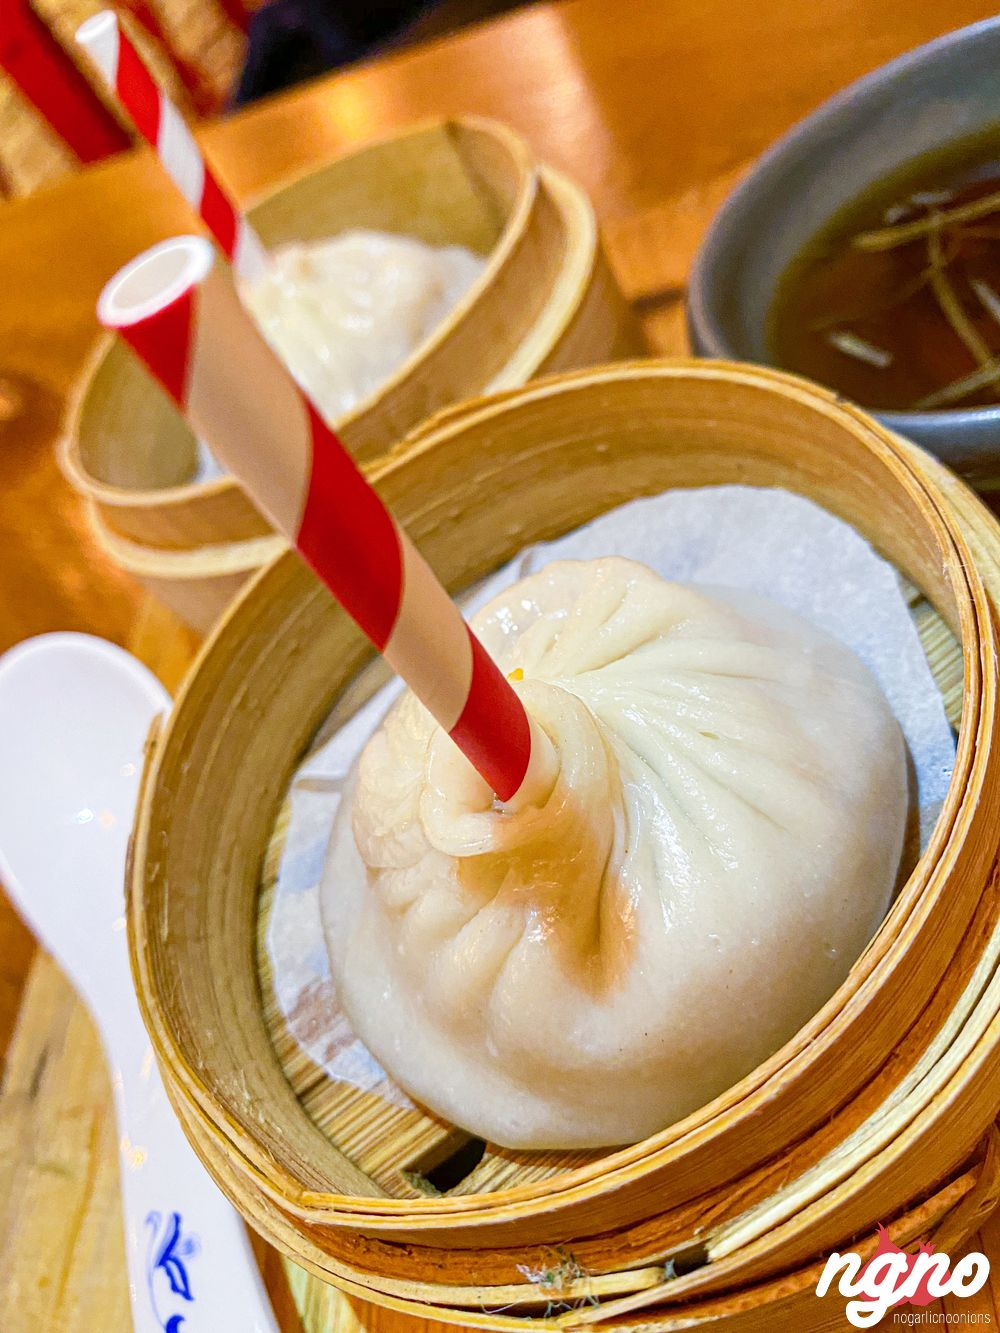 red-farm-chinese-restaurant-london-nogarlicnoonions-82019-12-19-08-09-552020-01-15-08-20-01